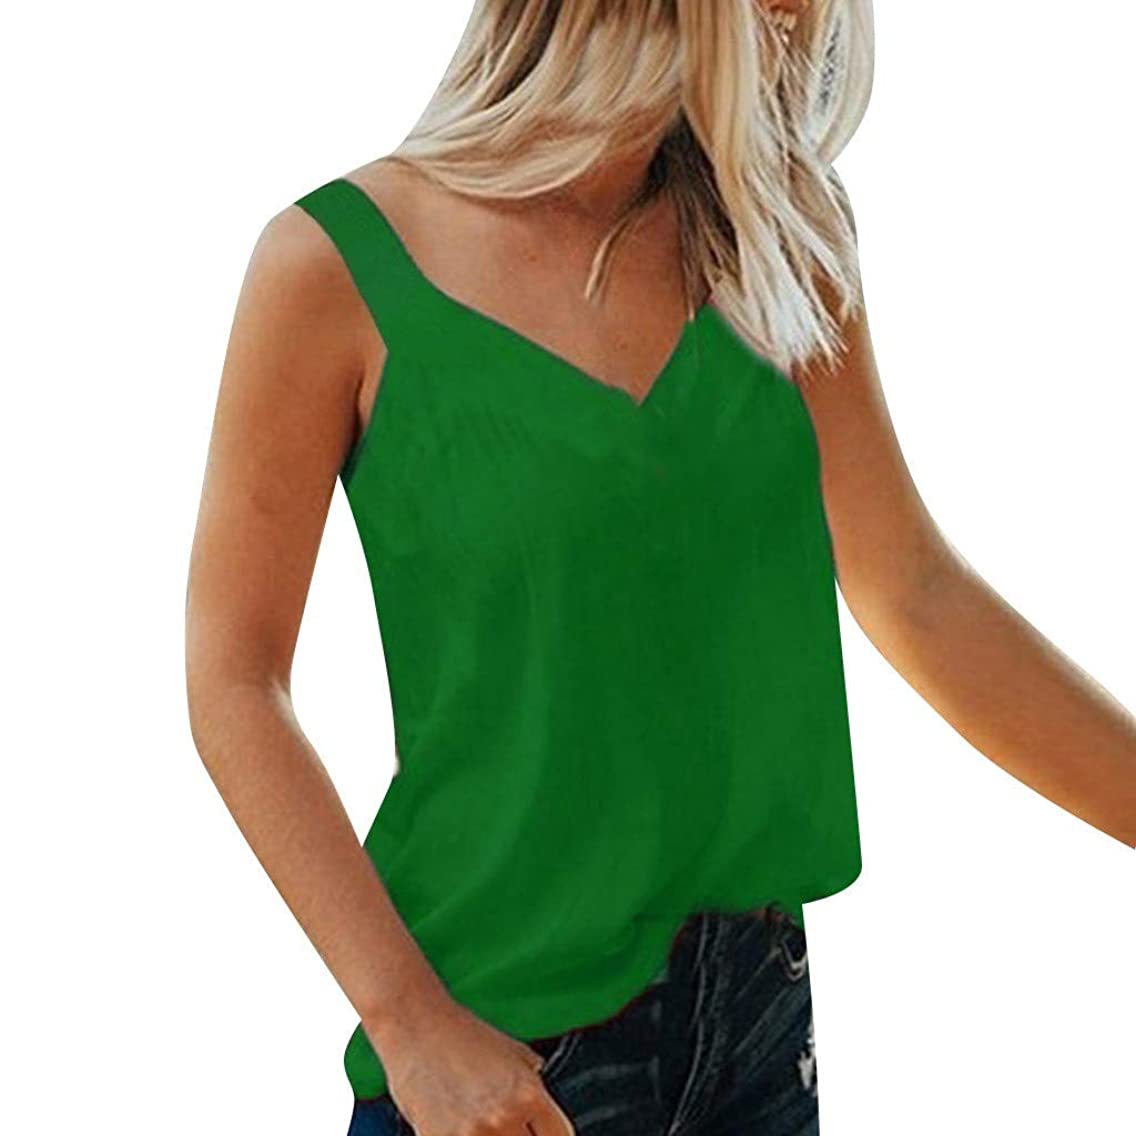 Yxiudeyyr Summer Women's Tops Boho Cami Straps V Neck Sleeveless Shirts Vest Camisole Solid Loose Tank Tops